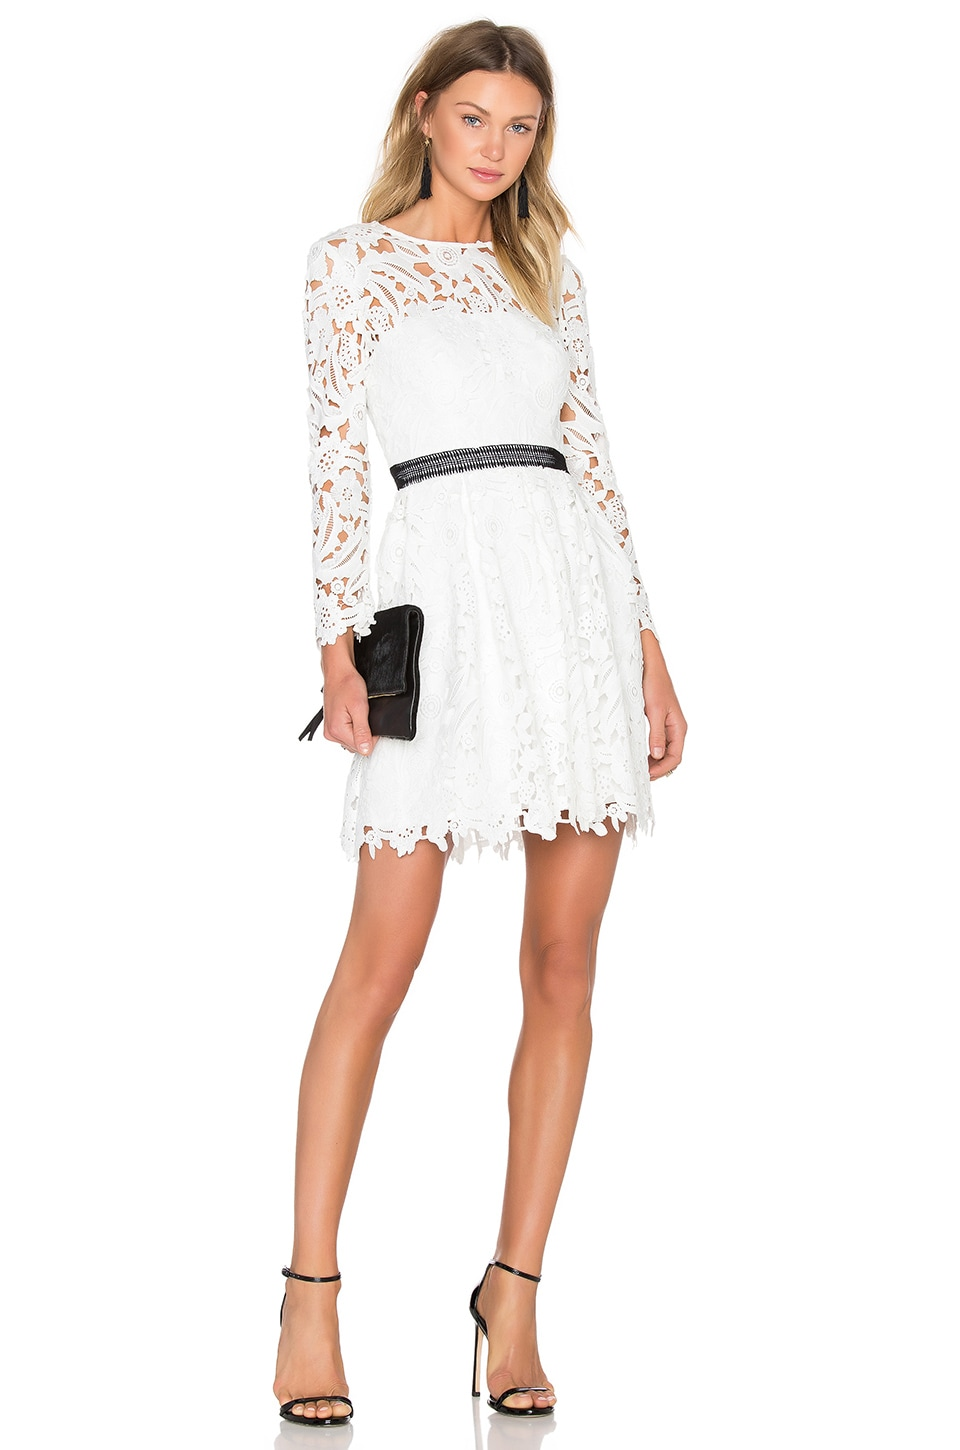 Wild Flower Fit & Flare Dress by Cynthia Rowley